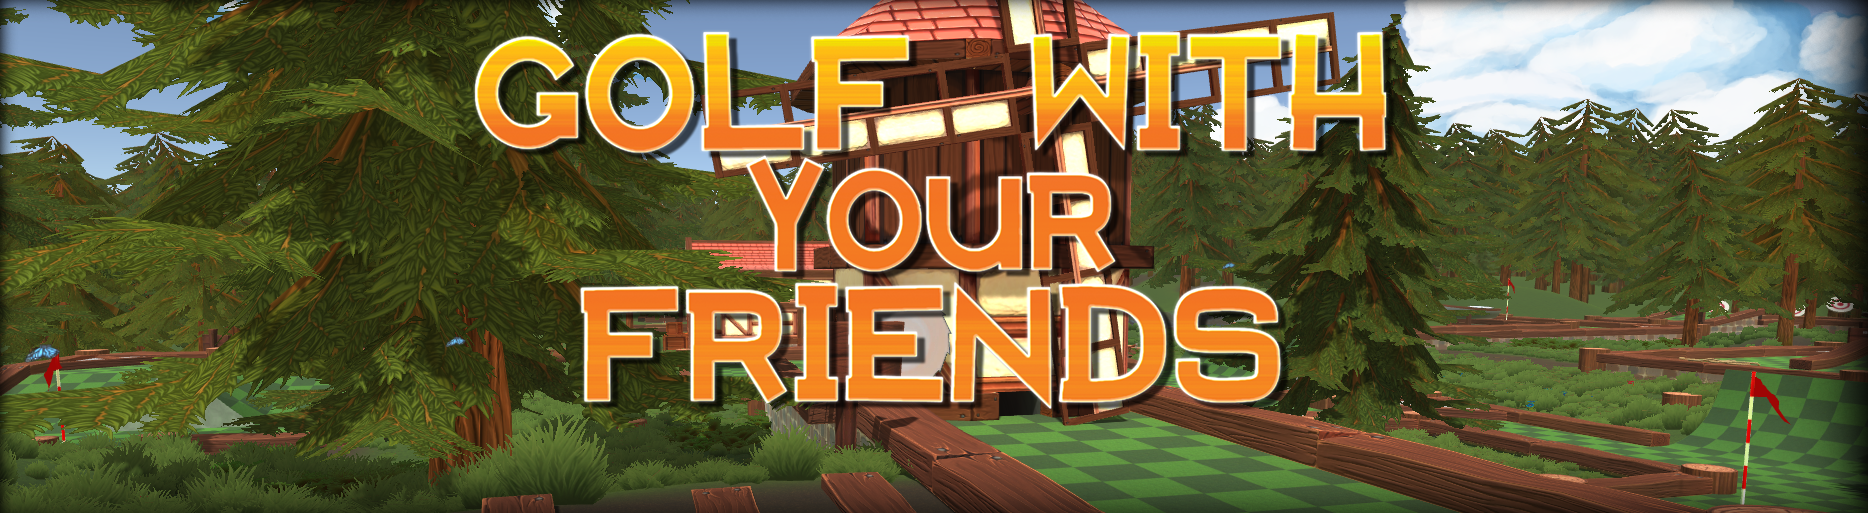 Golf with Your Friends (2016) promotional art.